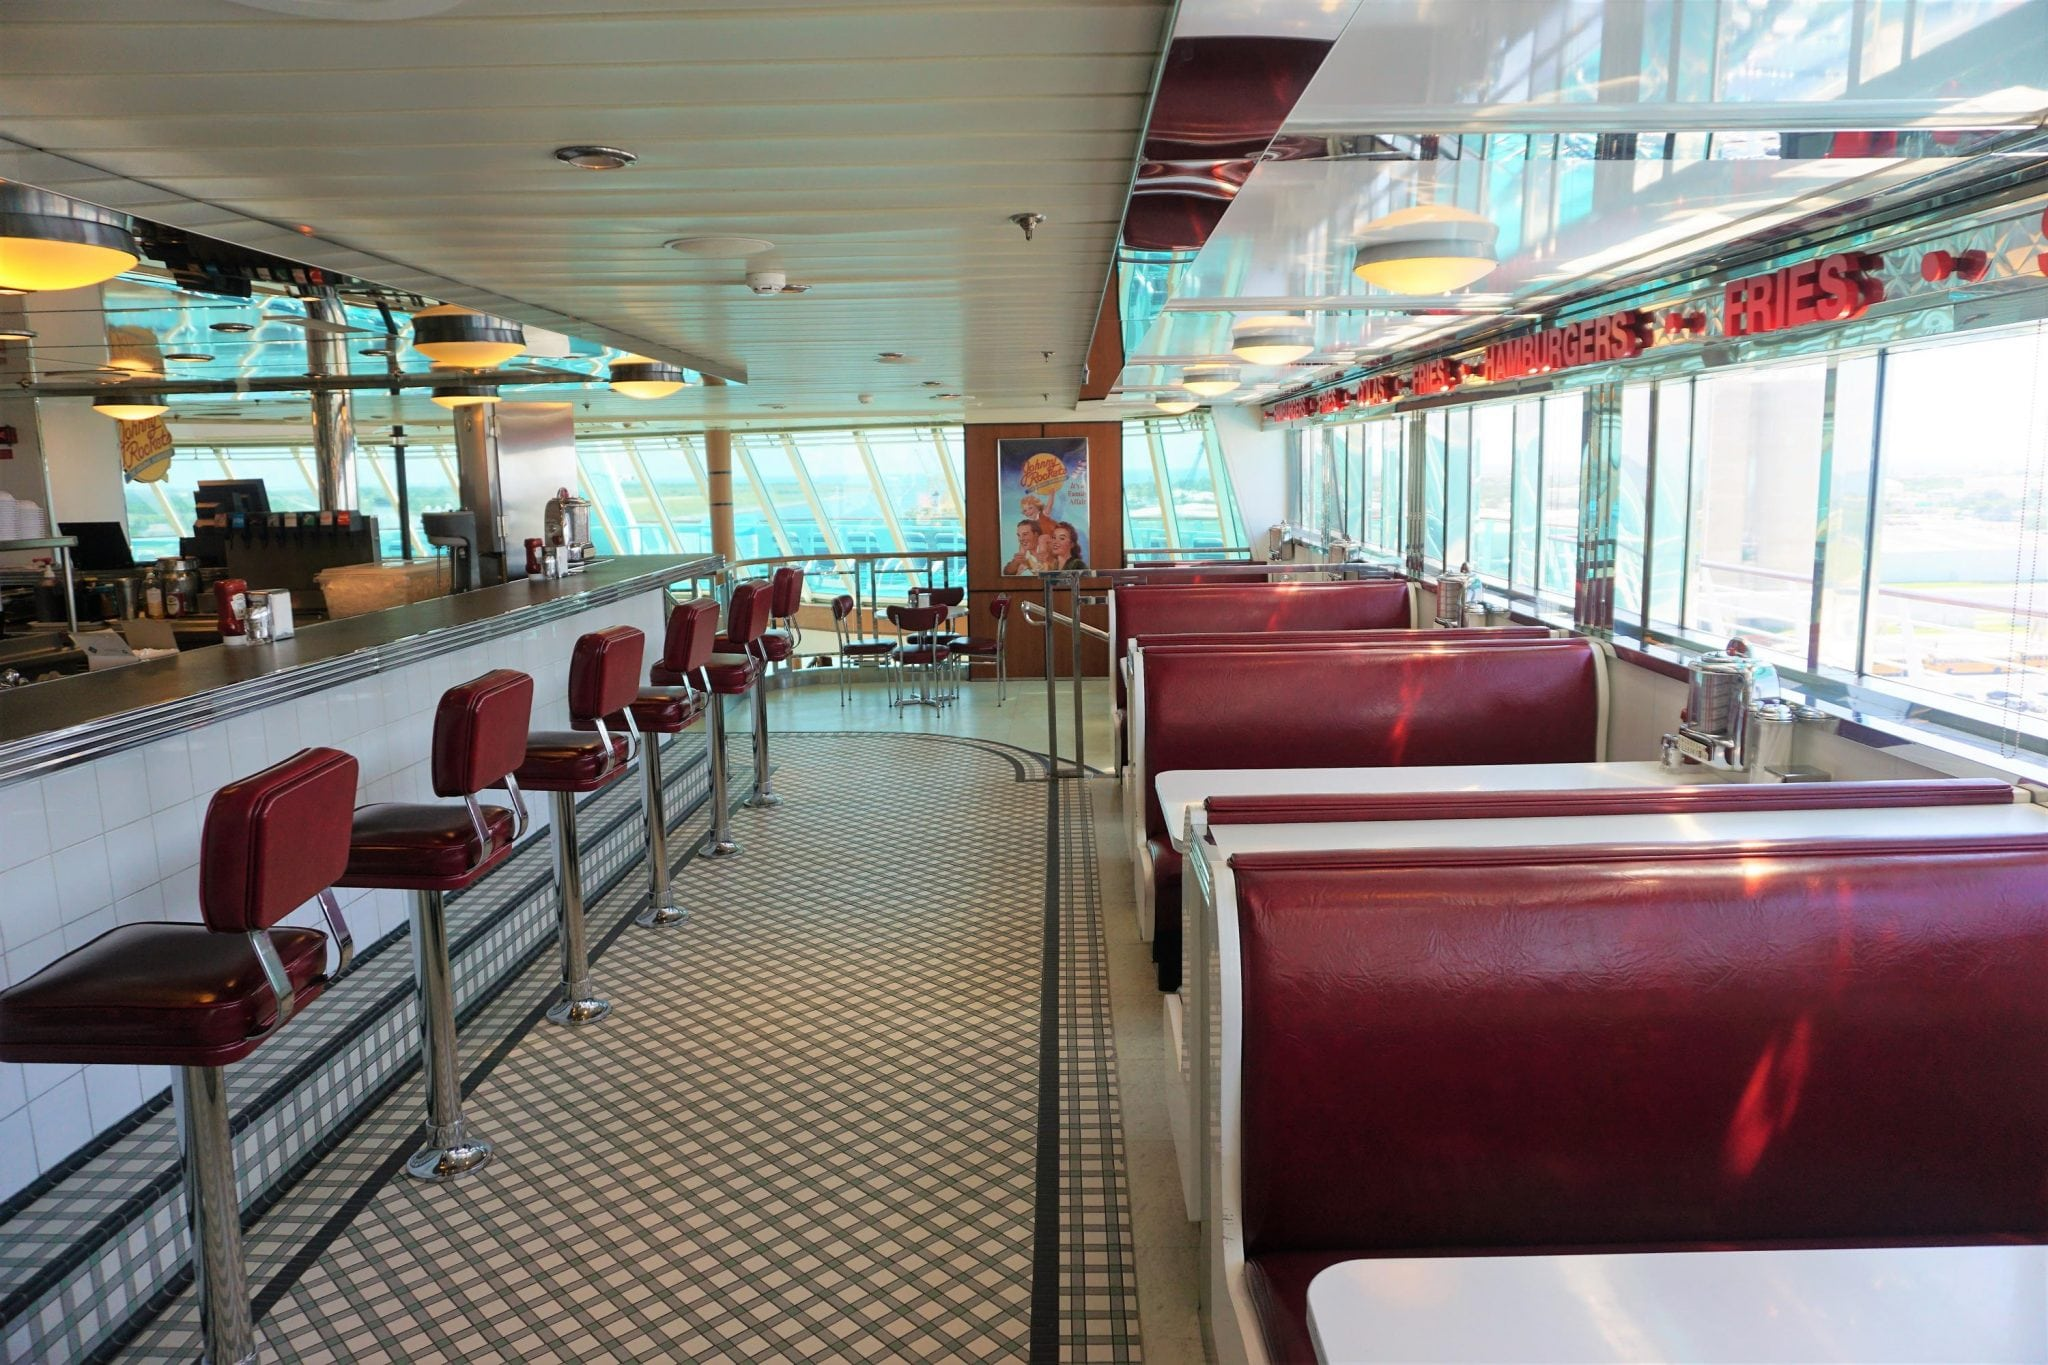 Inside Johnny Rockets on Majesty of the Seas